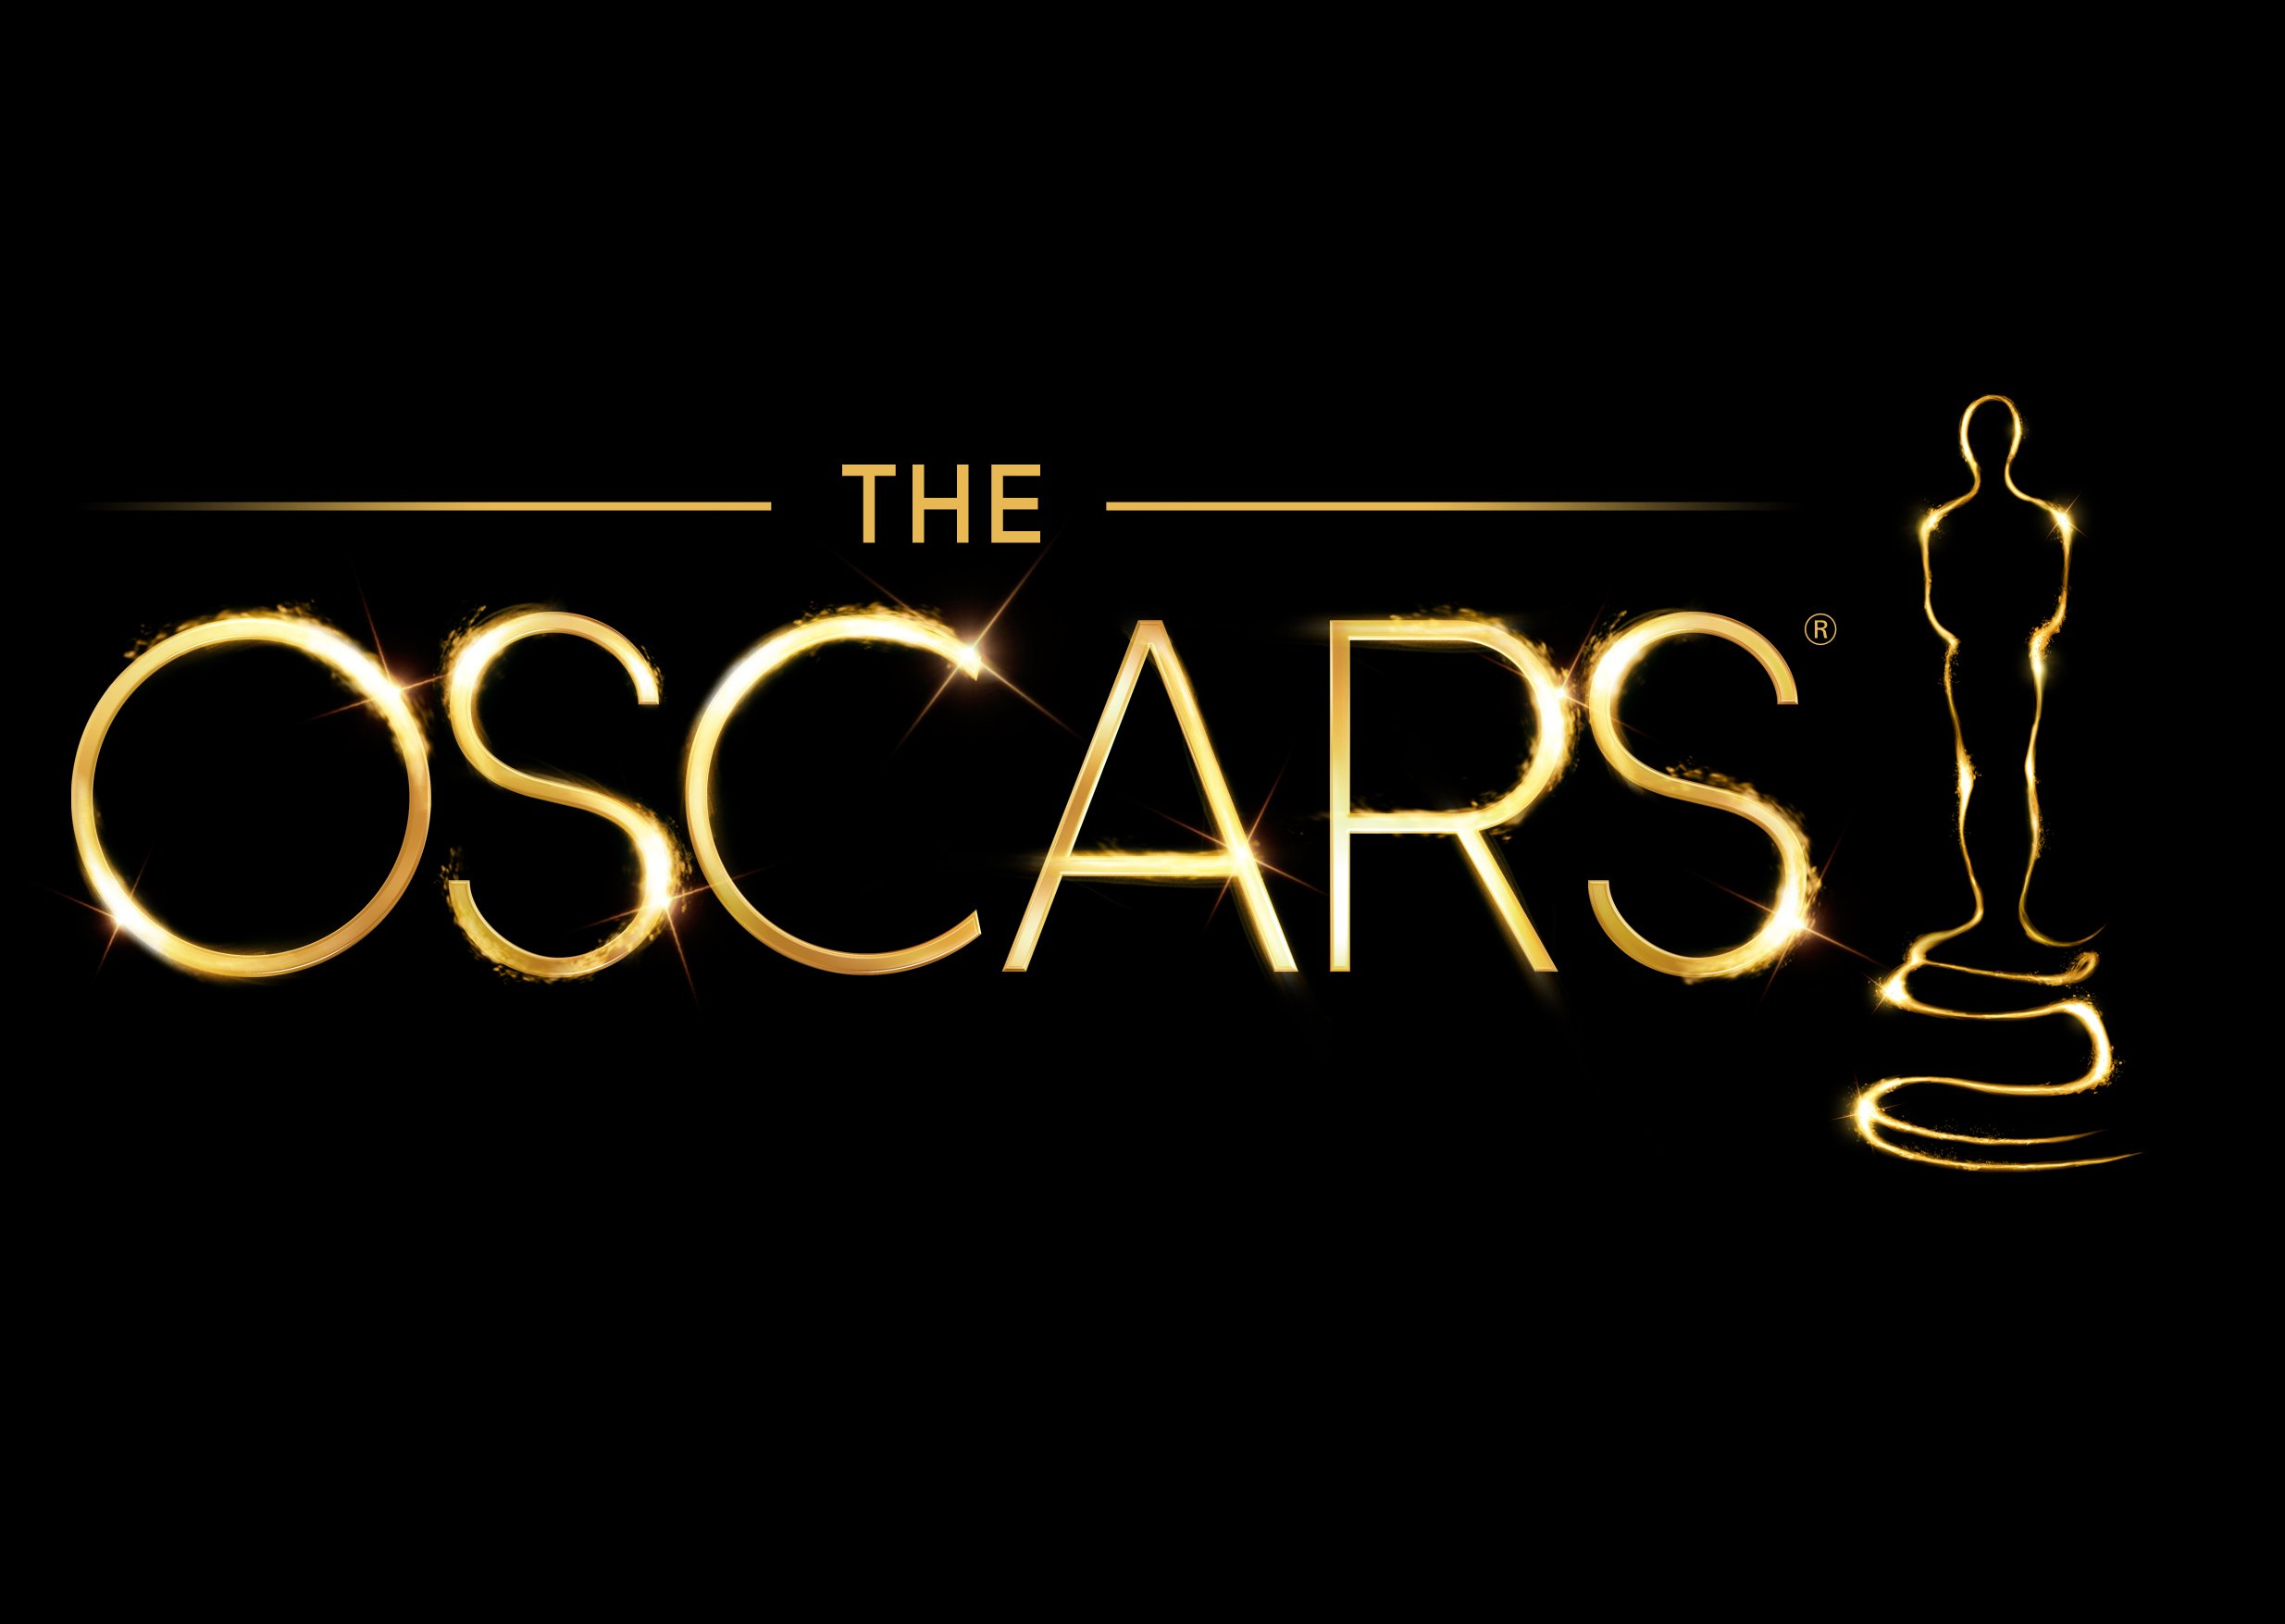 Academy Award Viewing Party Planning, Ideas, and Supplies